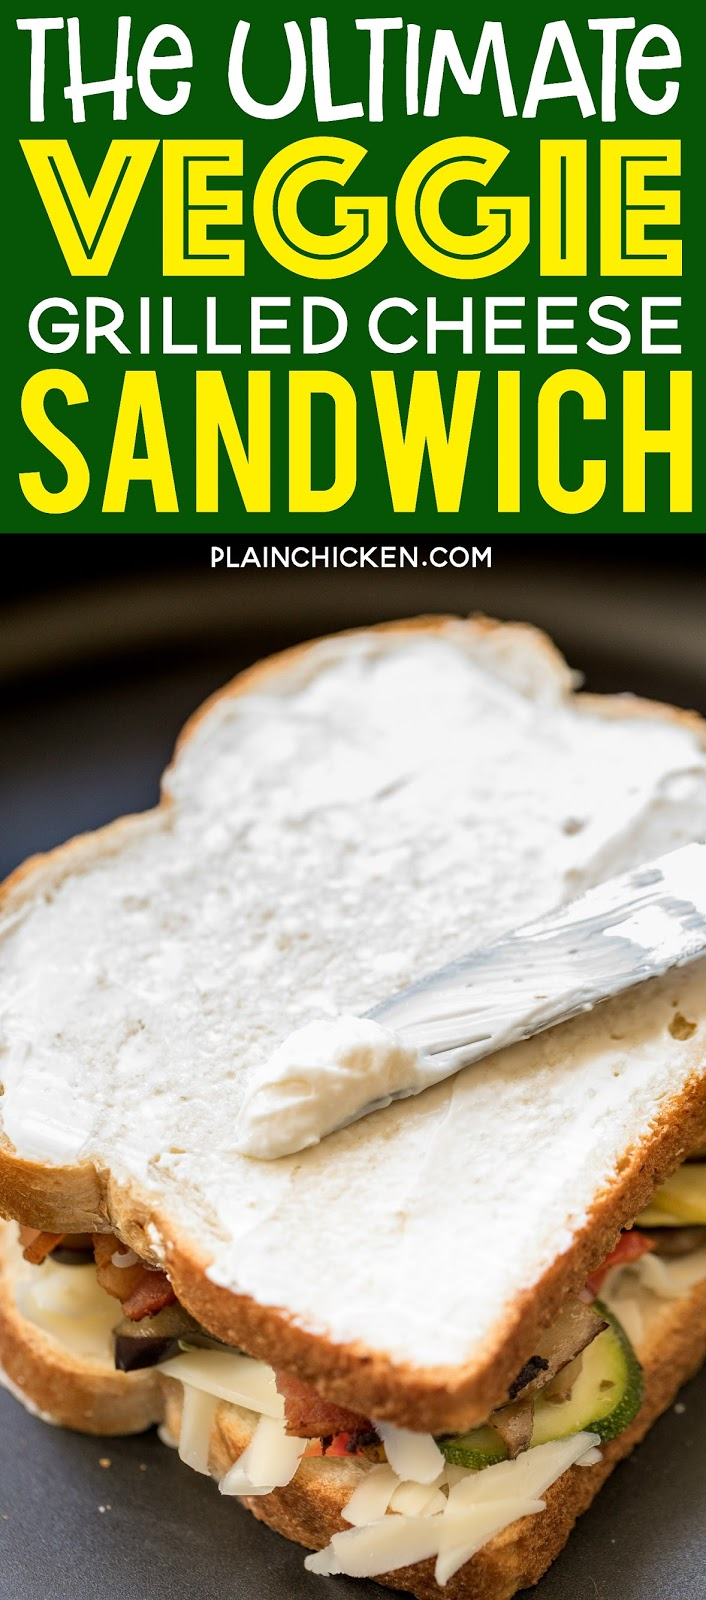 The Ultimate Veggie Grilled Cheese Sandwich - Plain Chicken